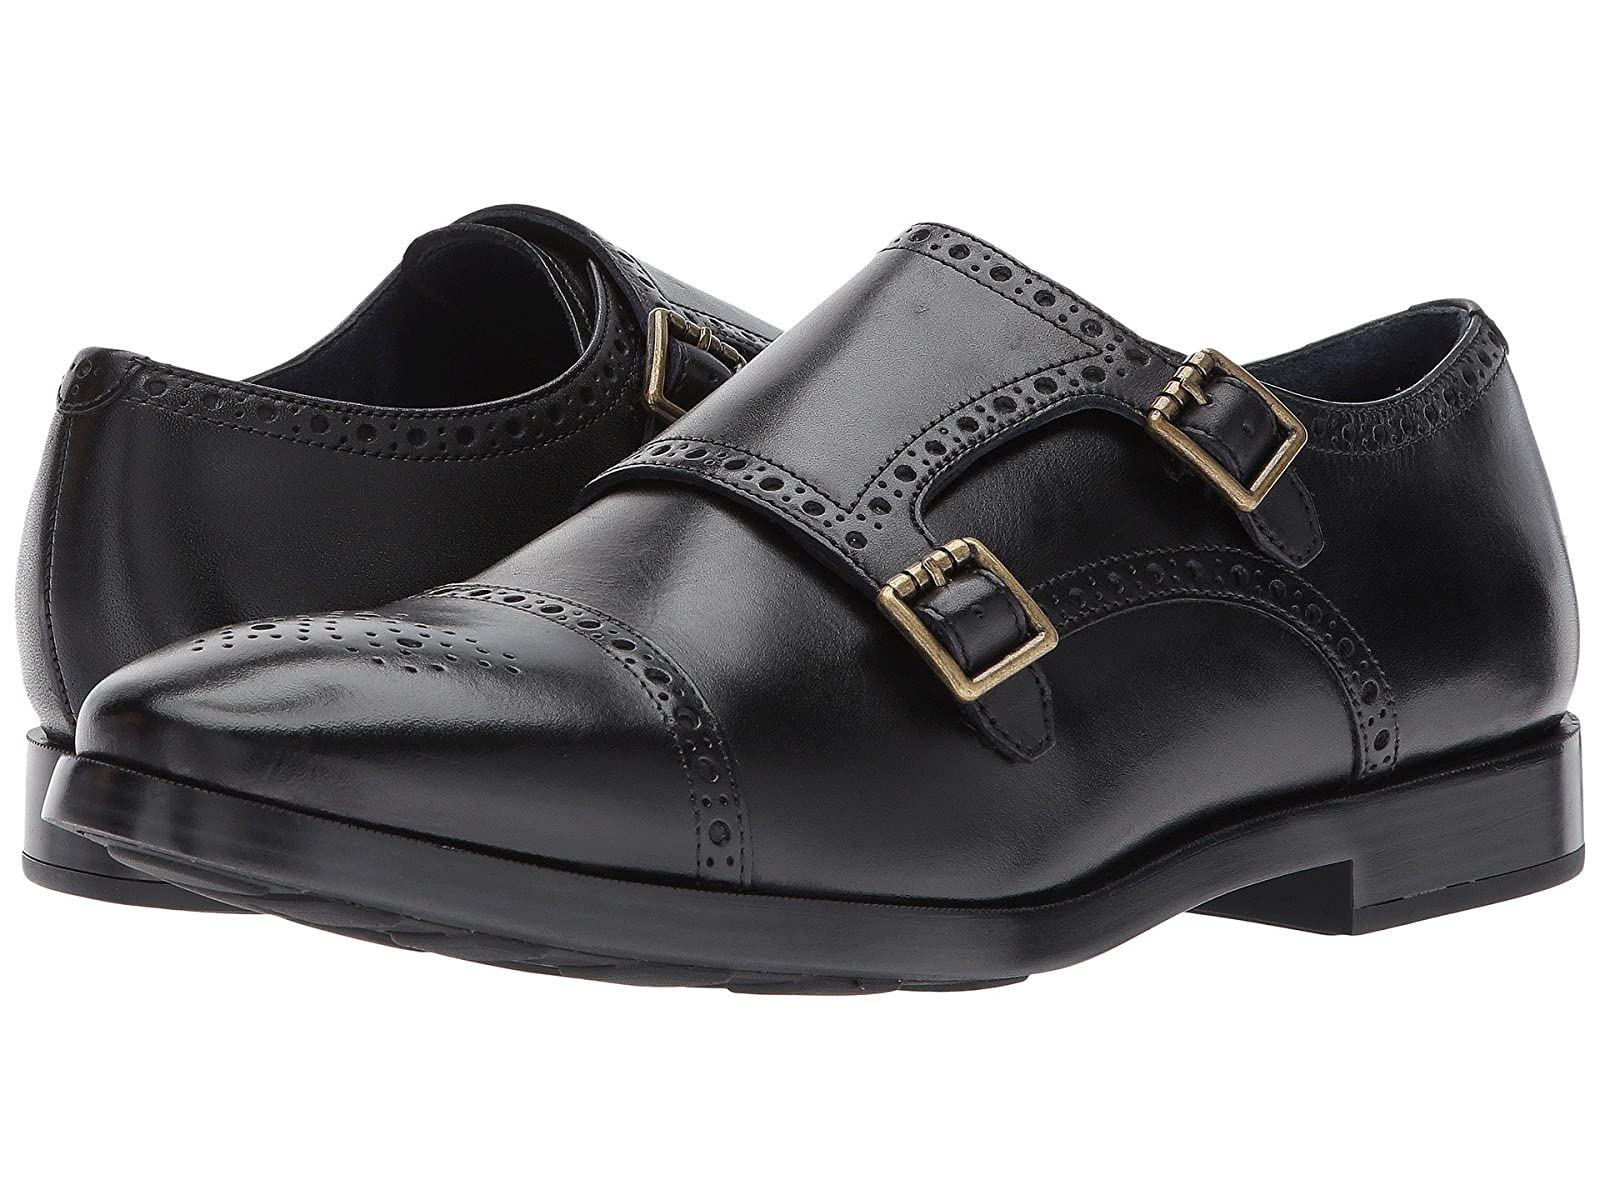 Cole Haan Jefferson Grand Double Monk IICheap and distinctive eye-catching shoes